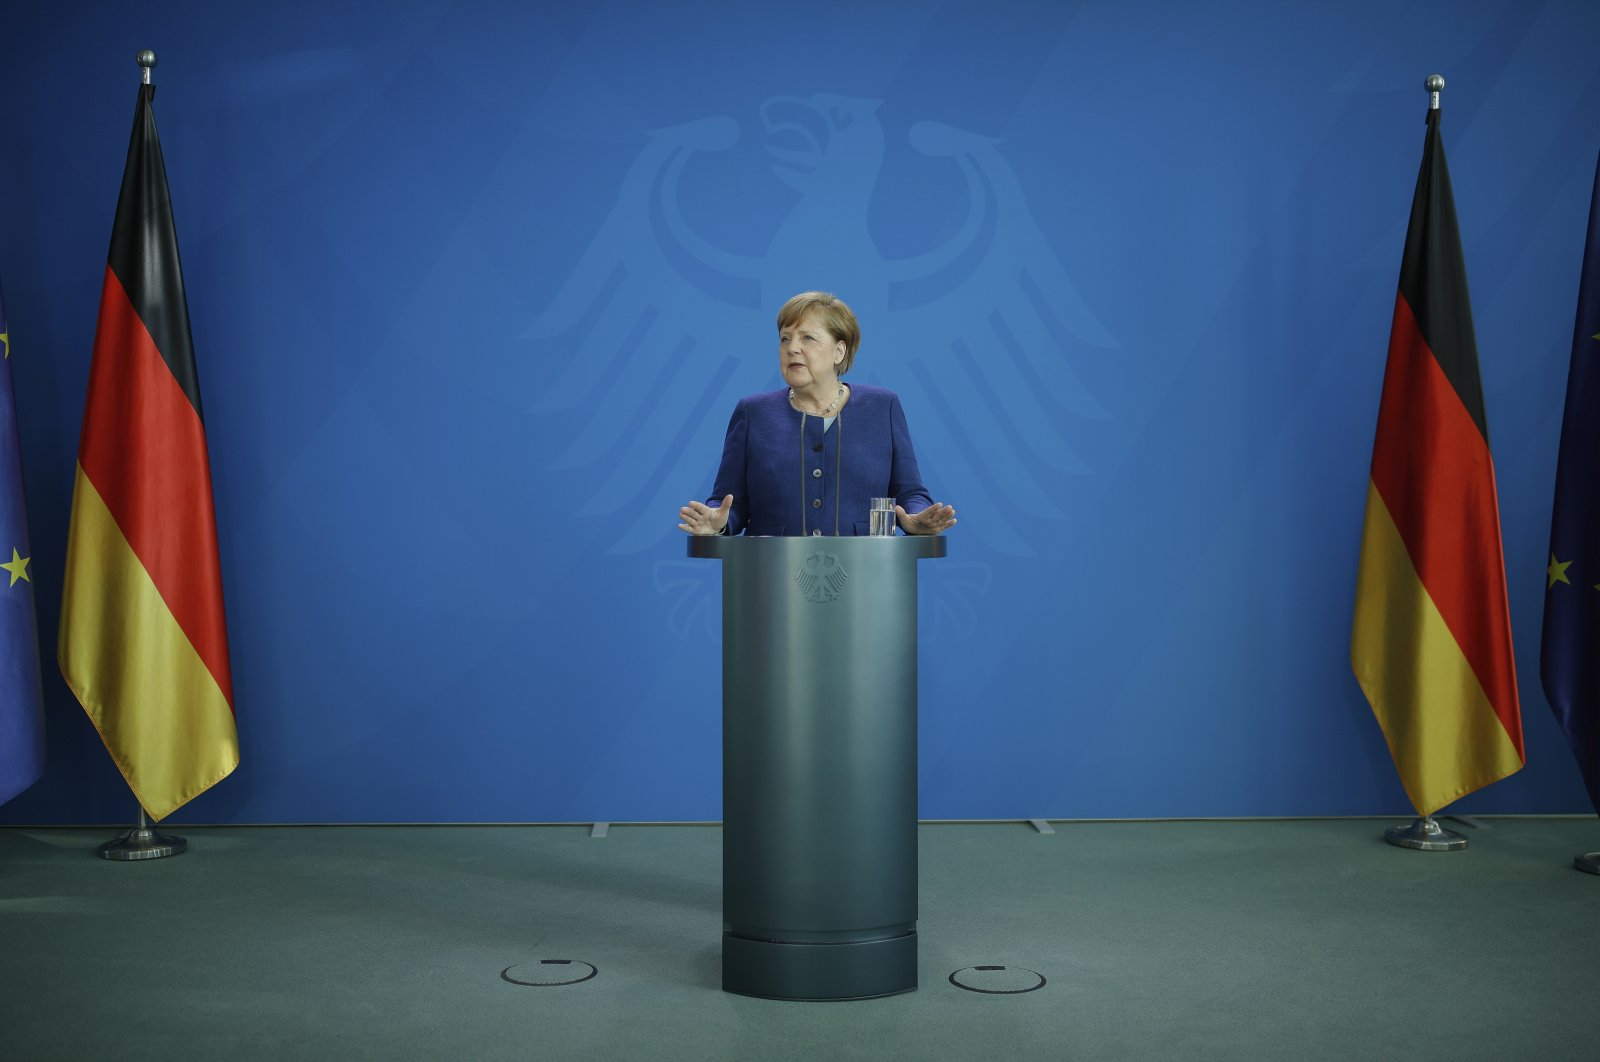 German Chancellor Angela Merkel addresses a press conference following a meeting with international economic and financial organizations on the effects of the coronavirus pandemic, at the Chancellery, Berlin, Germany, May 20, 2020. (AP Photo)